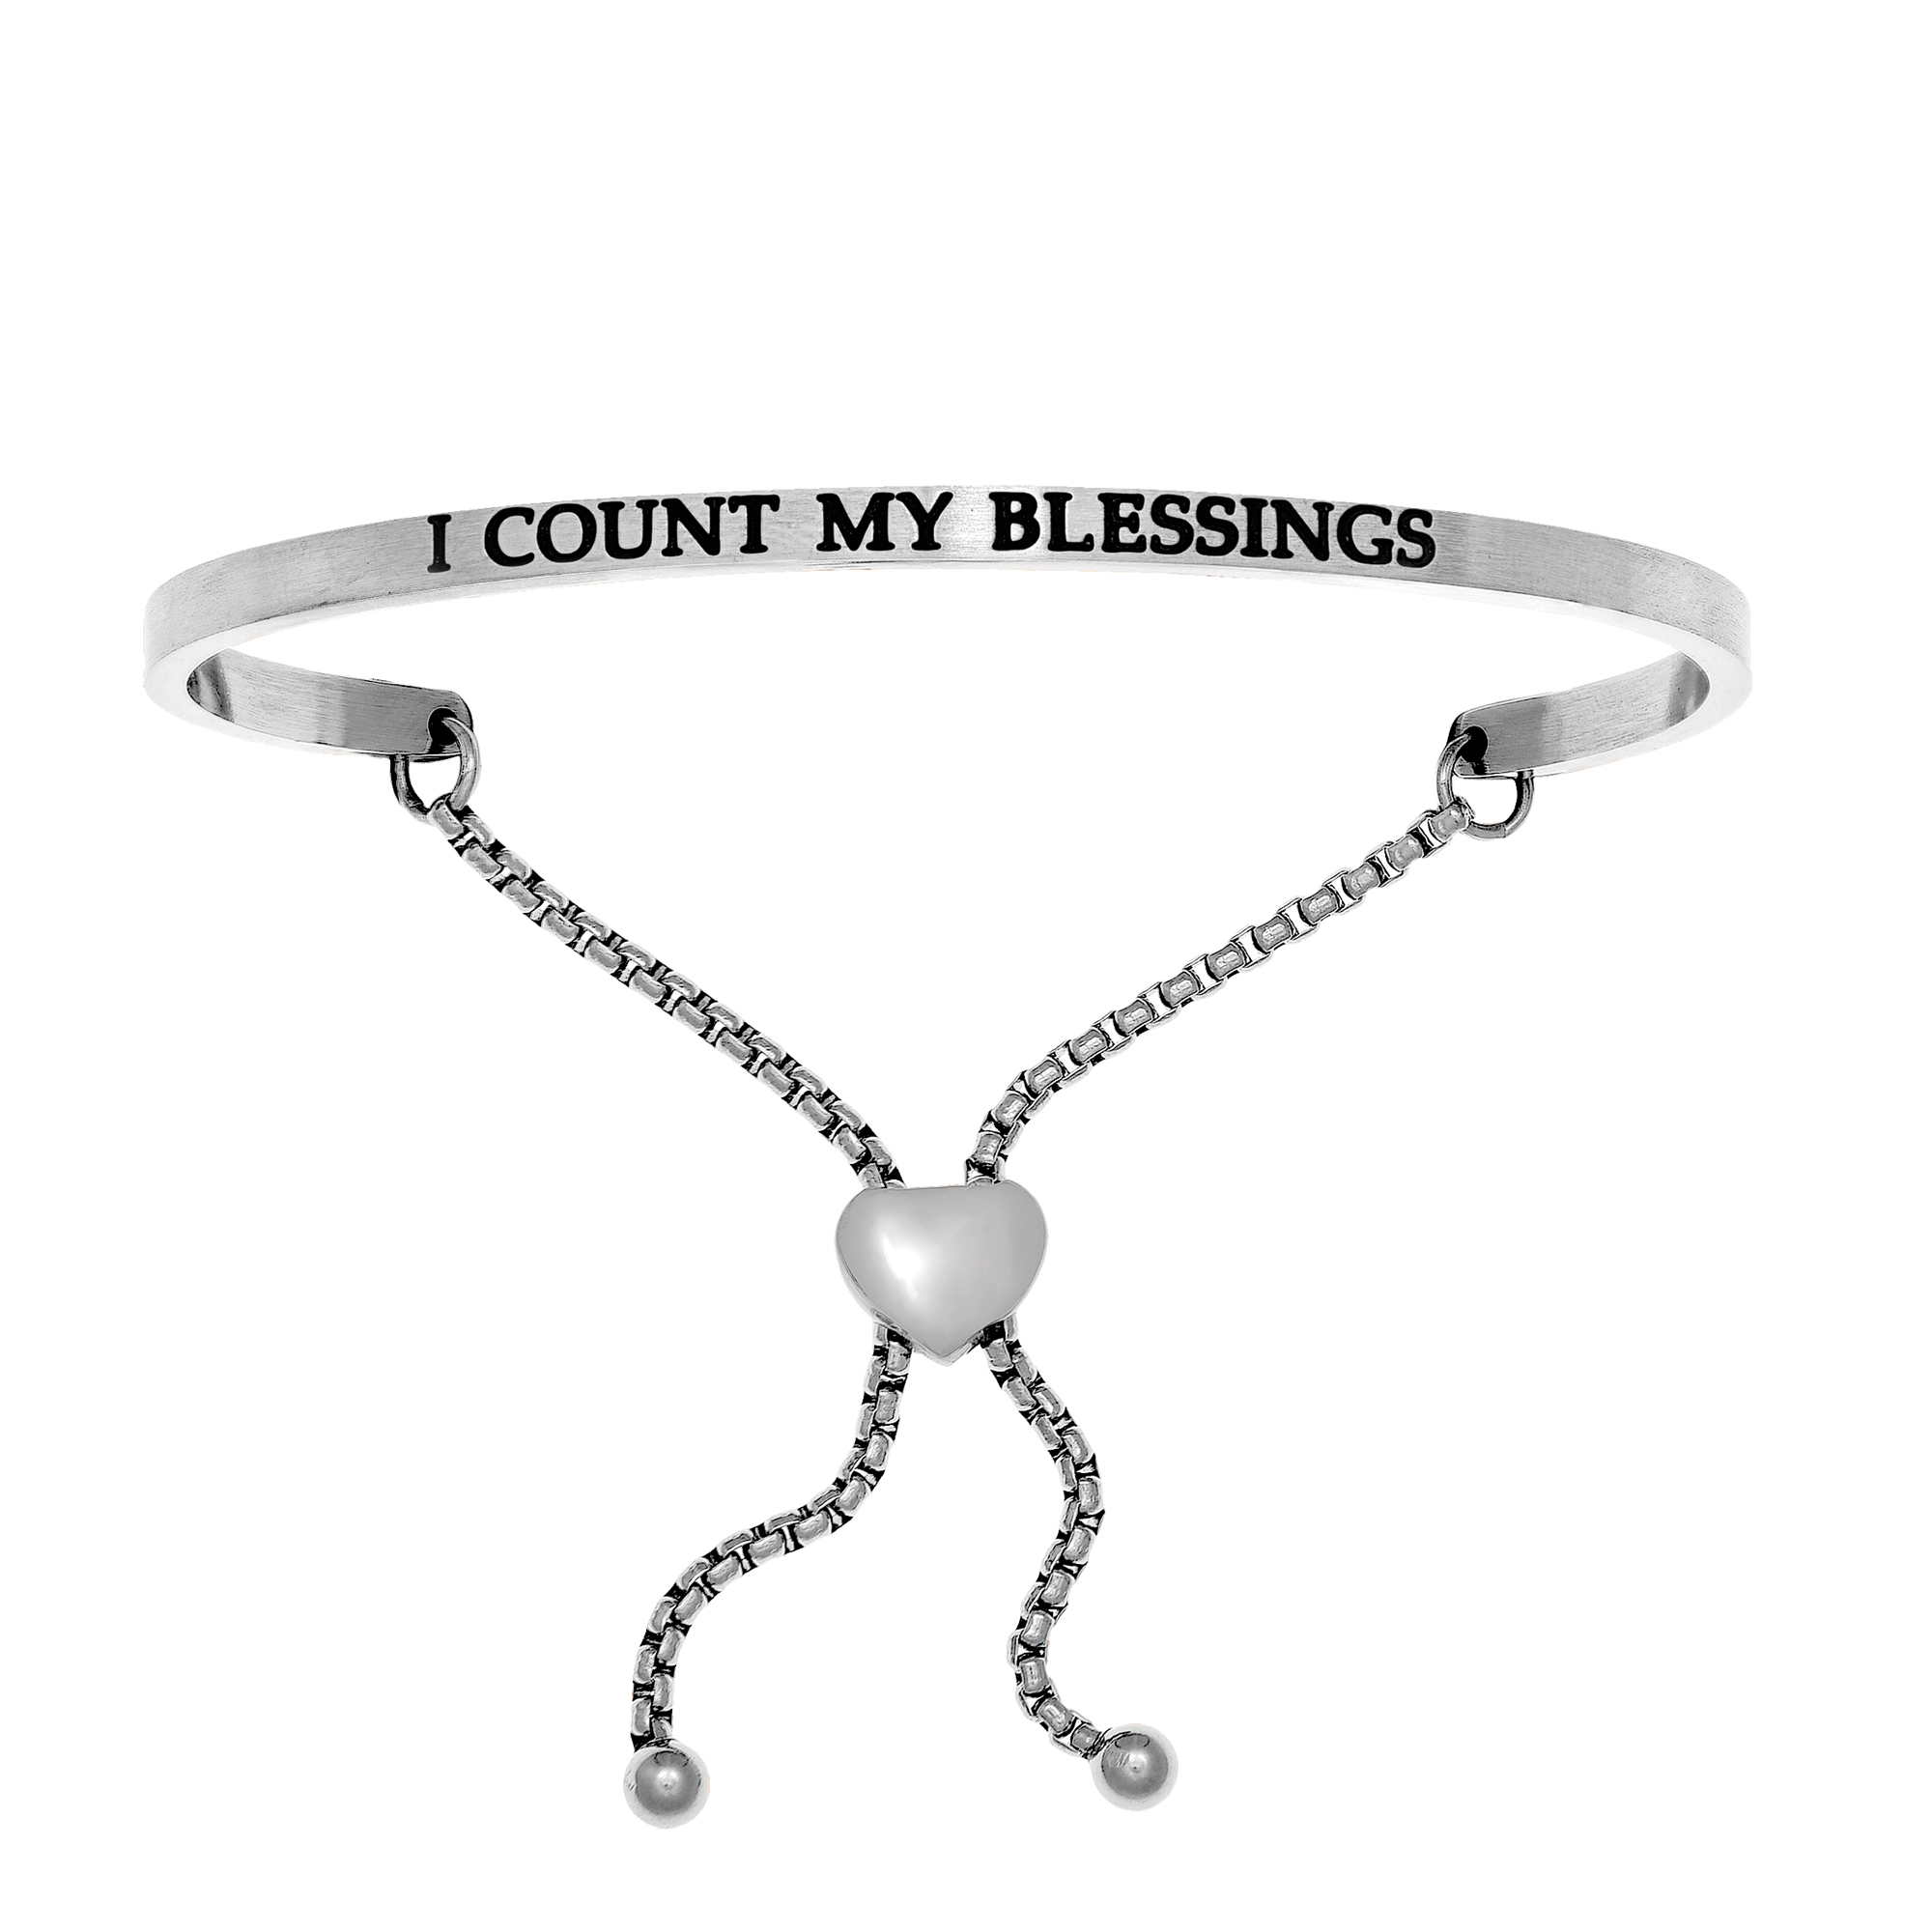 Intuitions Stainless Steel I COUNT MY BLESSINGS Diamond Accent Adjustable Bracelet Each of these bracelets carries a personal message of inspiration, spirituality or just plain fun. Meant to be worn alone or stacked together for a smart, contemporary look, they're a great self-purchase or as a gift for family or friends. Intuitions are made of stainless steel and come in two styles standard cuff or friendship and fit practically any wrist. Intuitions Jewelry makes the difference in your daily life by designing and creating bracelets and bangles with motivational quotes to inspire you and your loved ones. Giving back $.25 of each bracelet to BABY2BABY